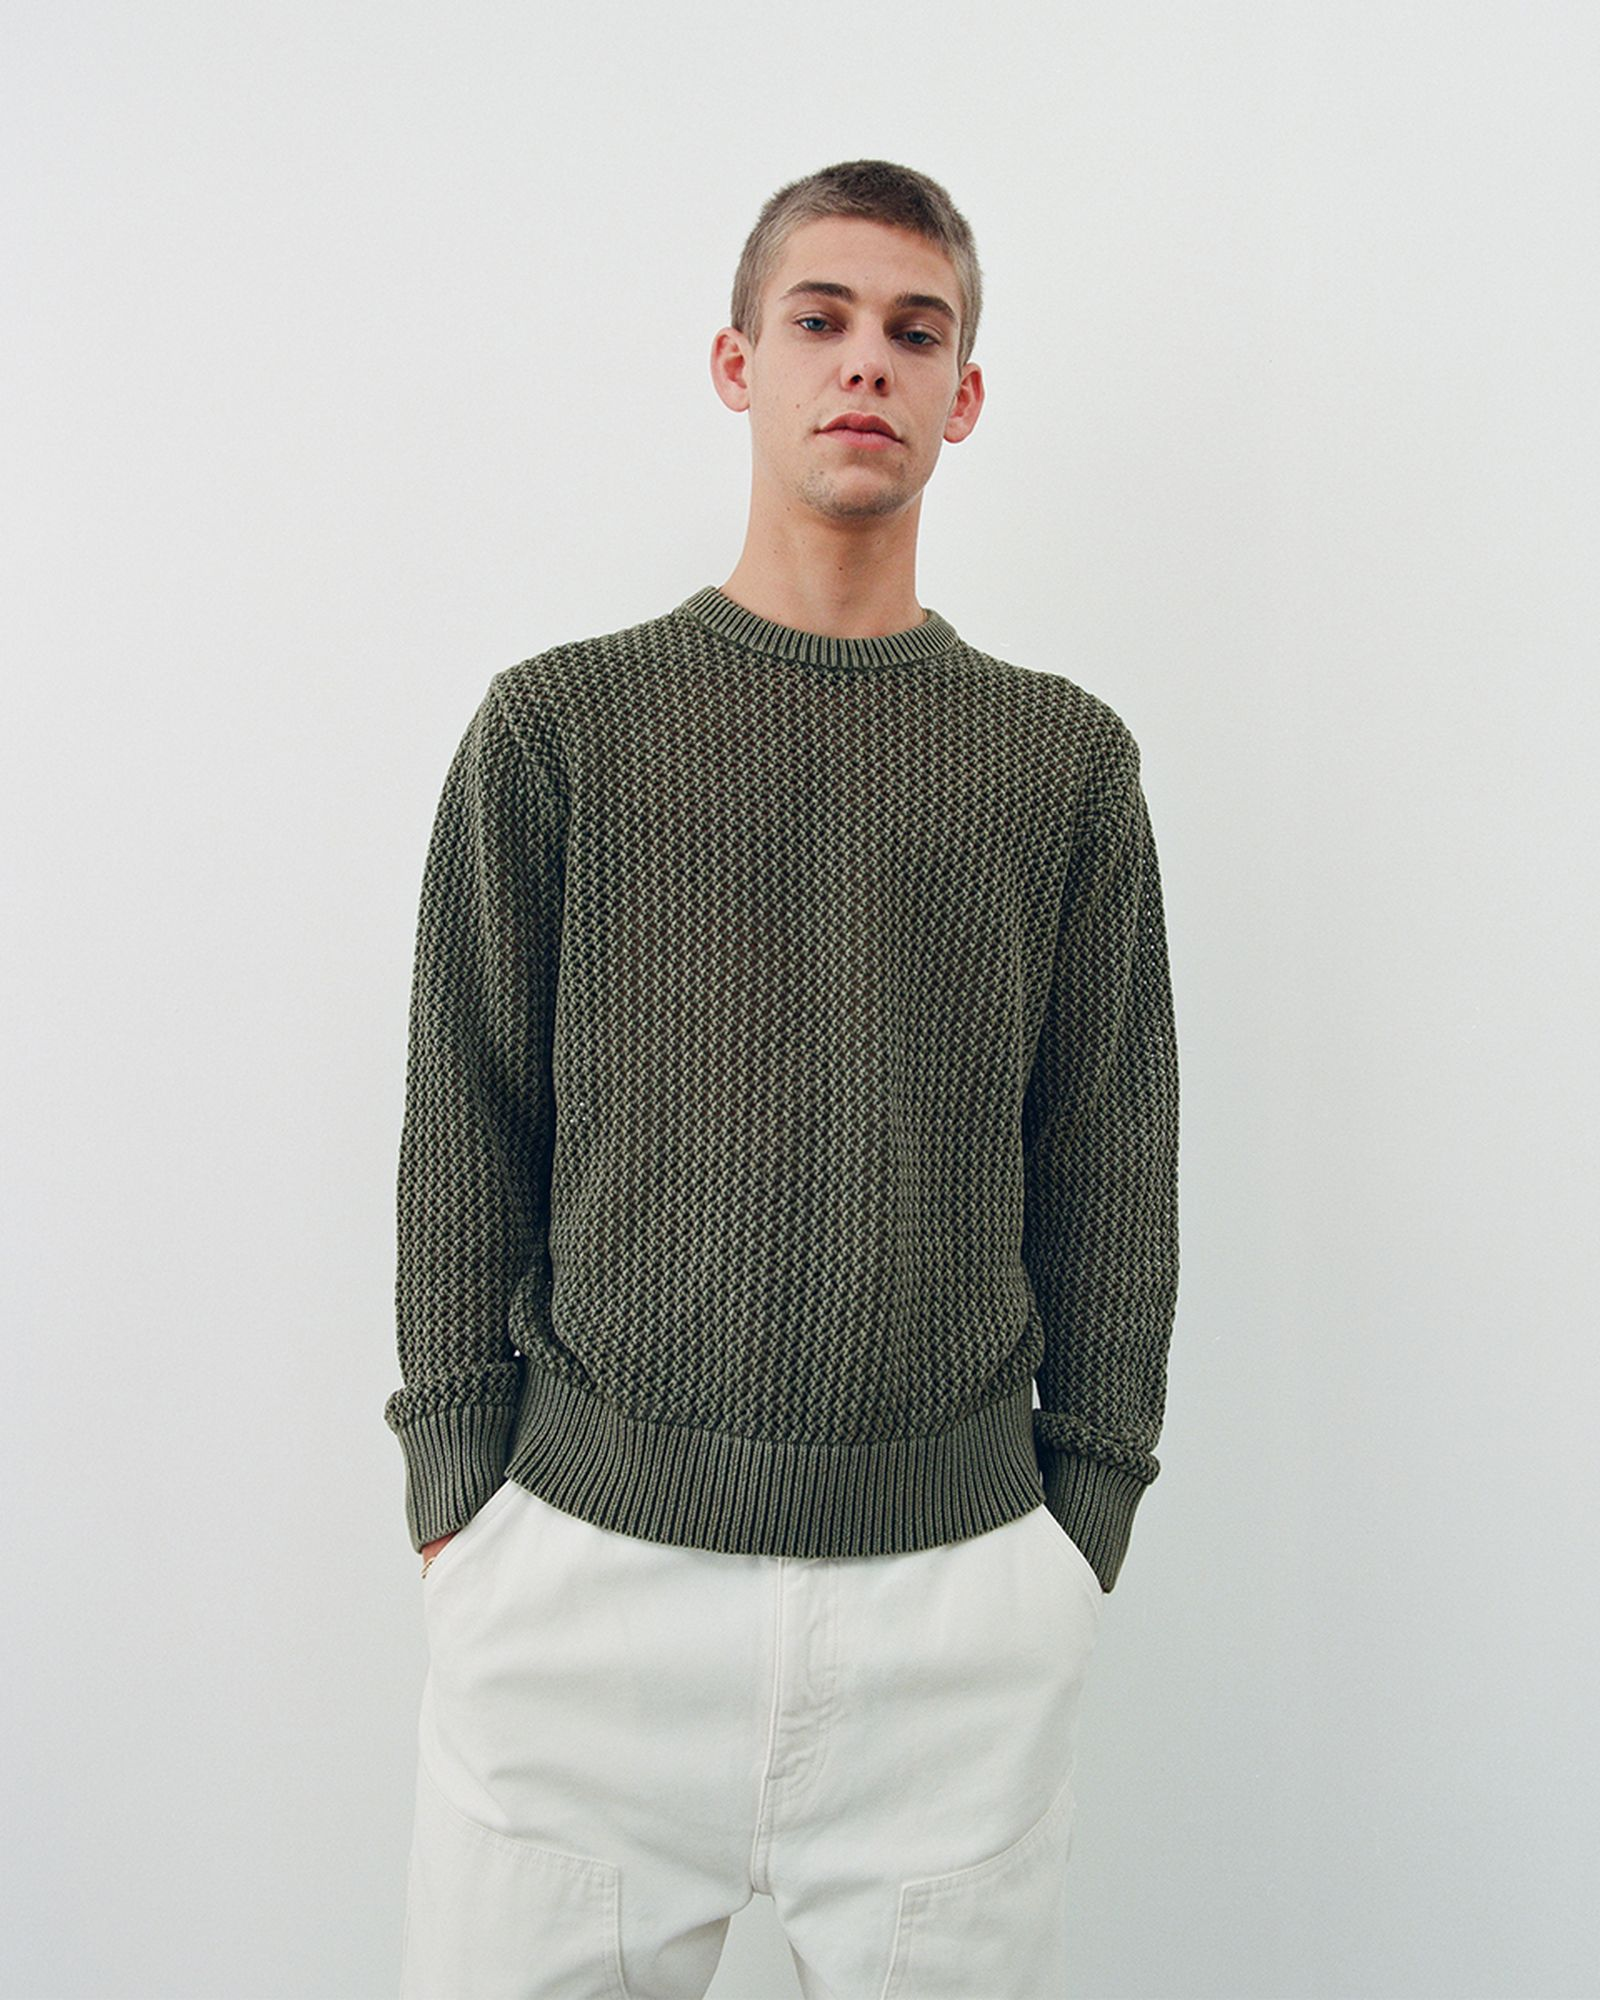 Stussy fall 2021 collection lookbook (16)